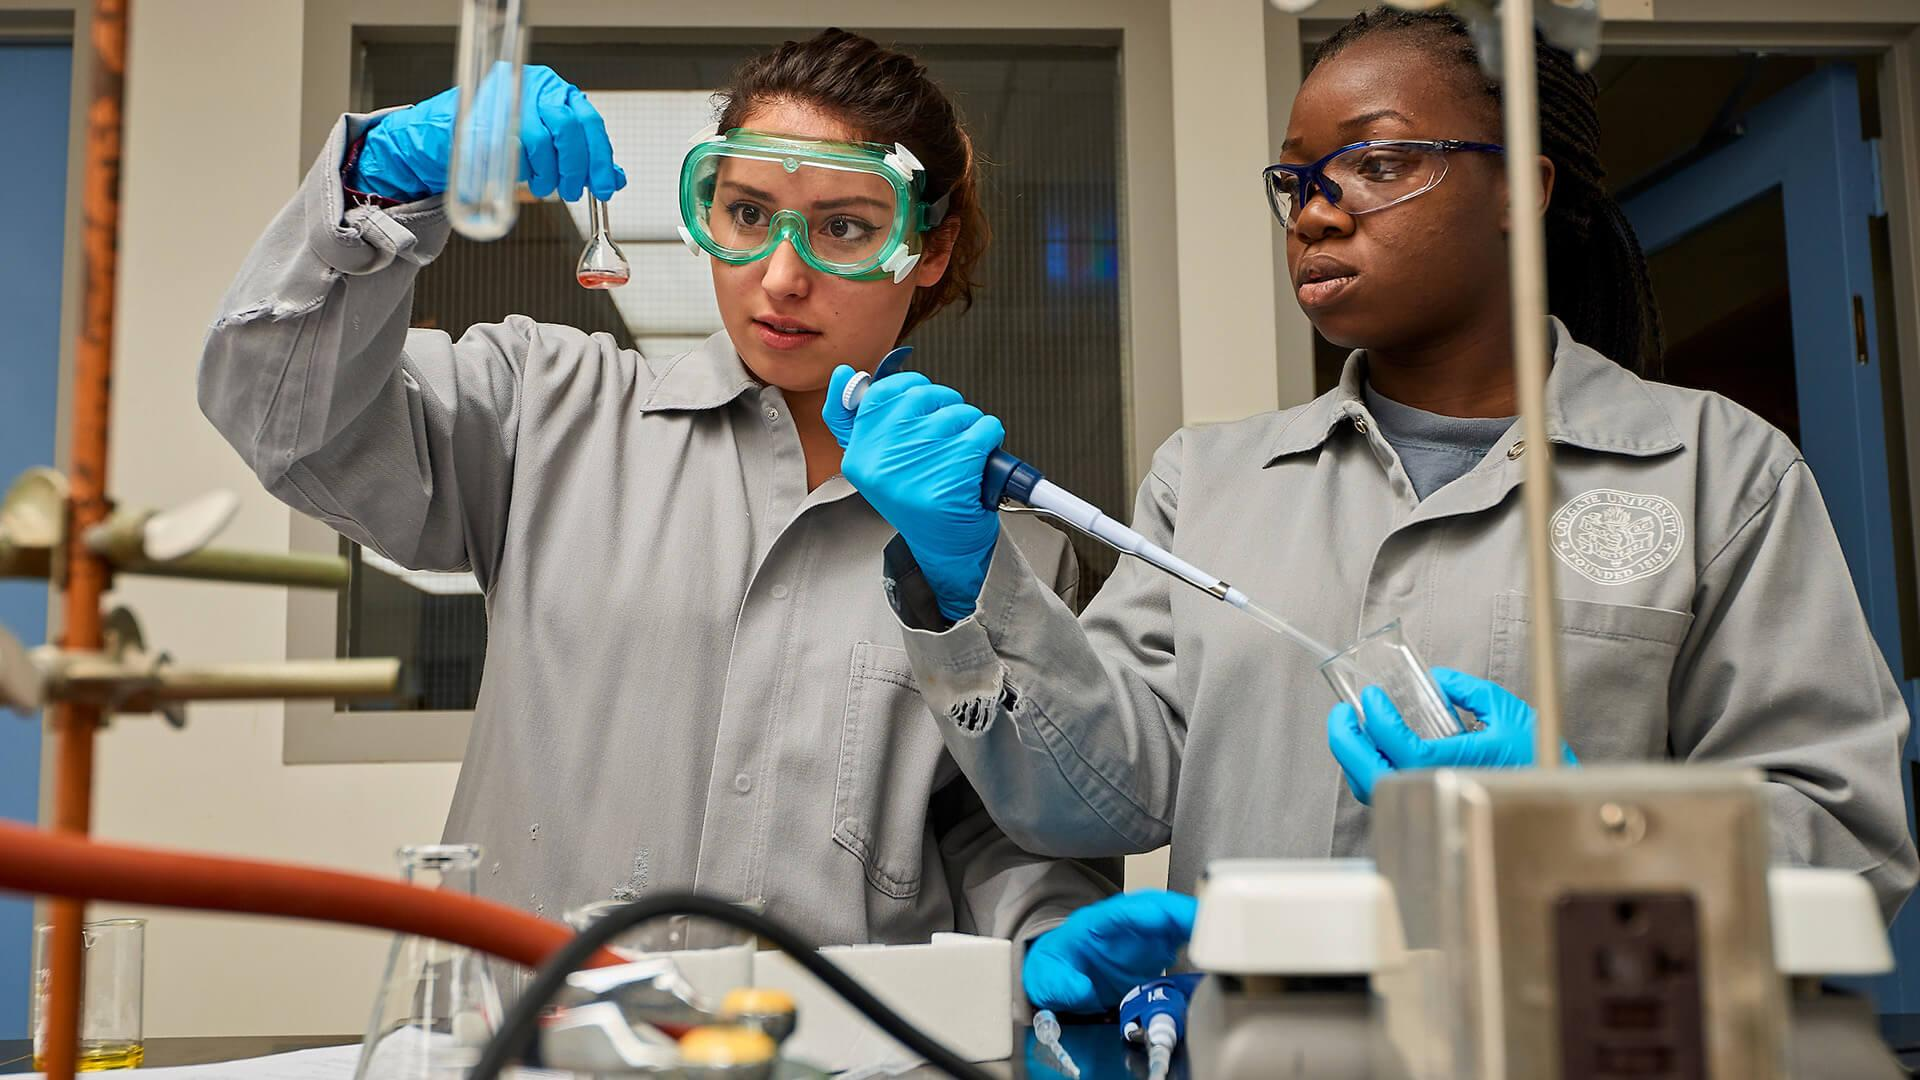 Students perform experiments in an introductory chemistry class in Colgate University's Olin Hall